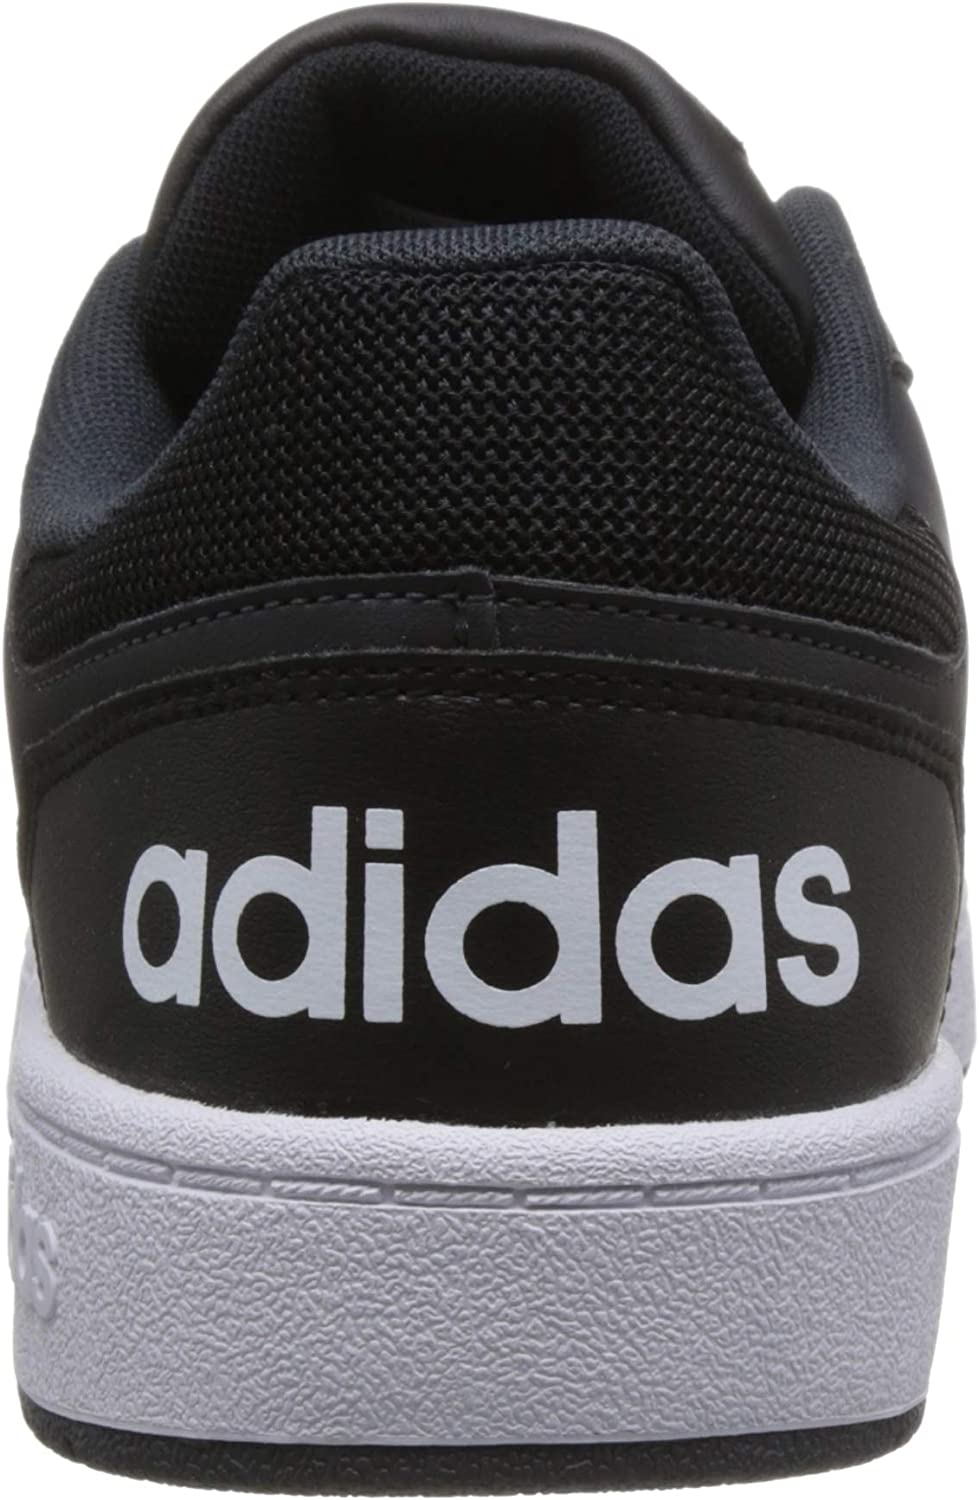 Chaussures de Fitness Homme adidas Hoops 2.0